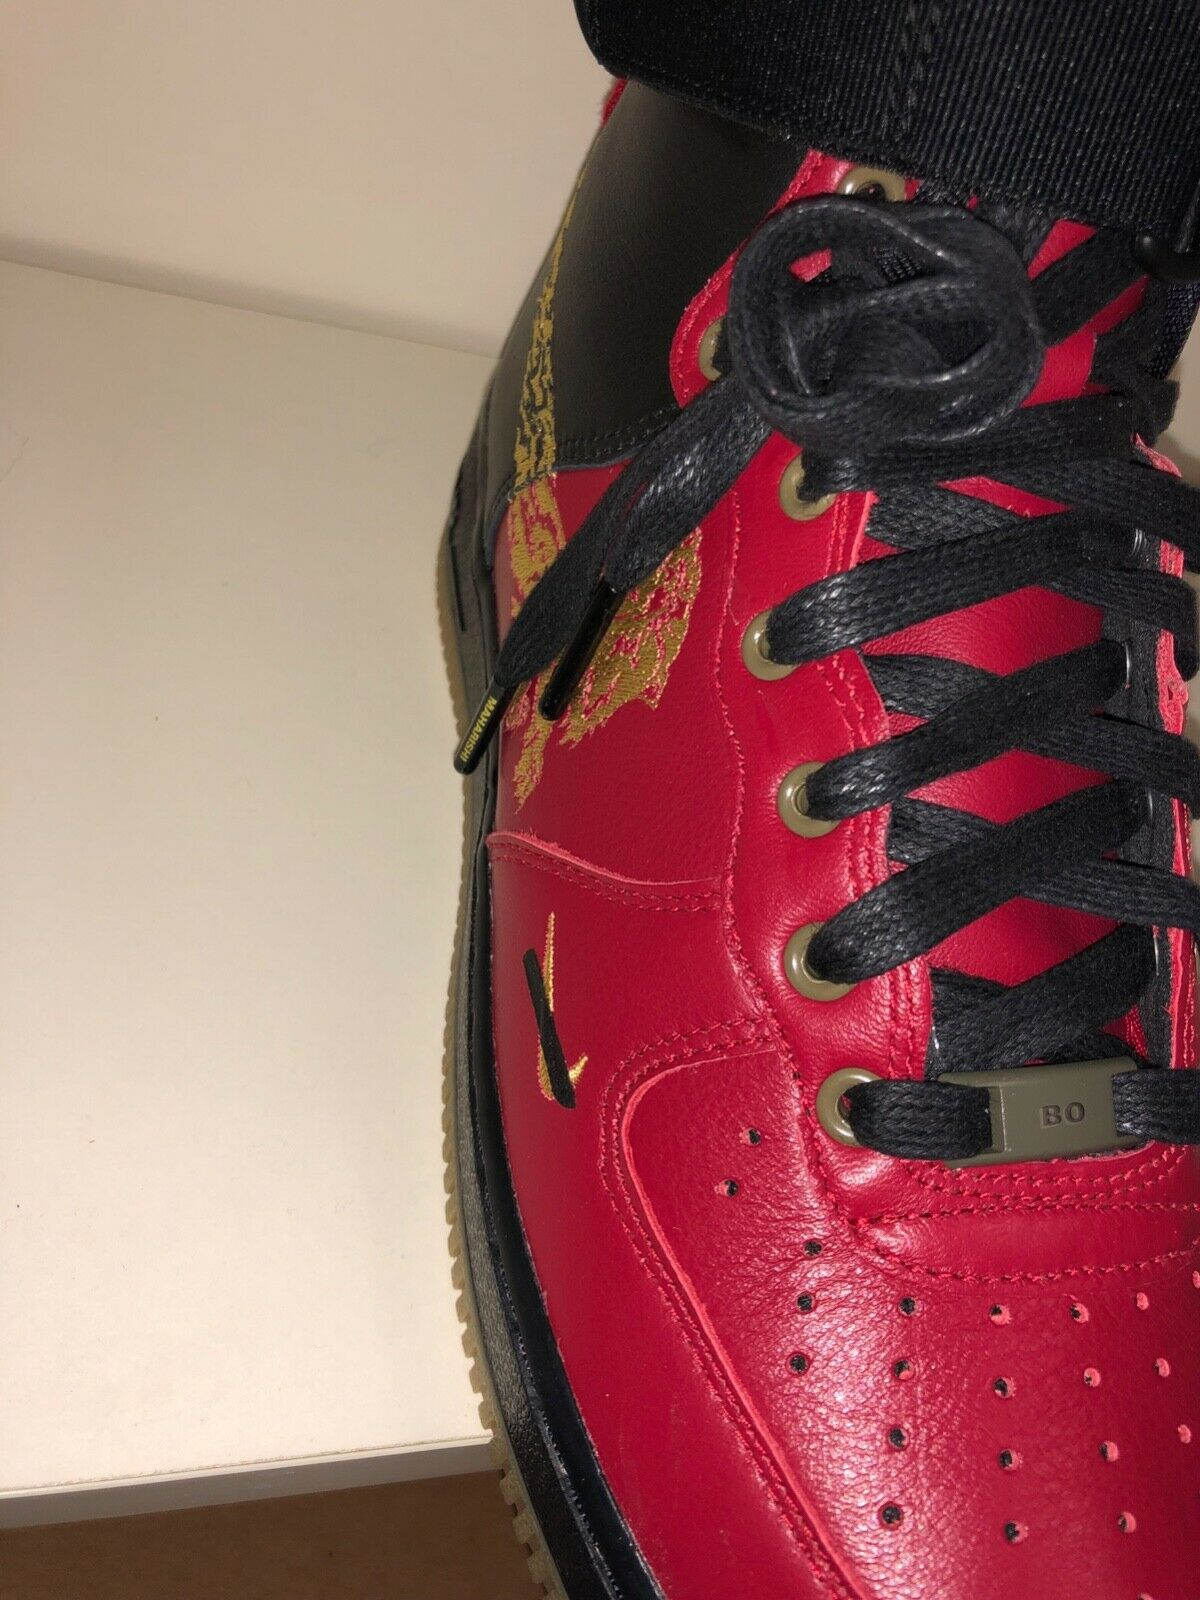 Nike Air Force 1 1 1 High by maharishi nero rosso, 42 EU, New 915a2f